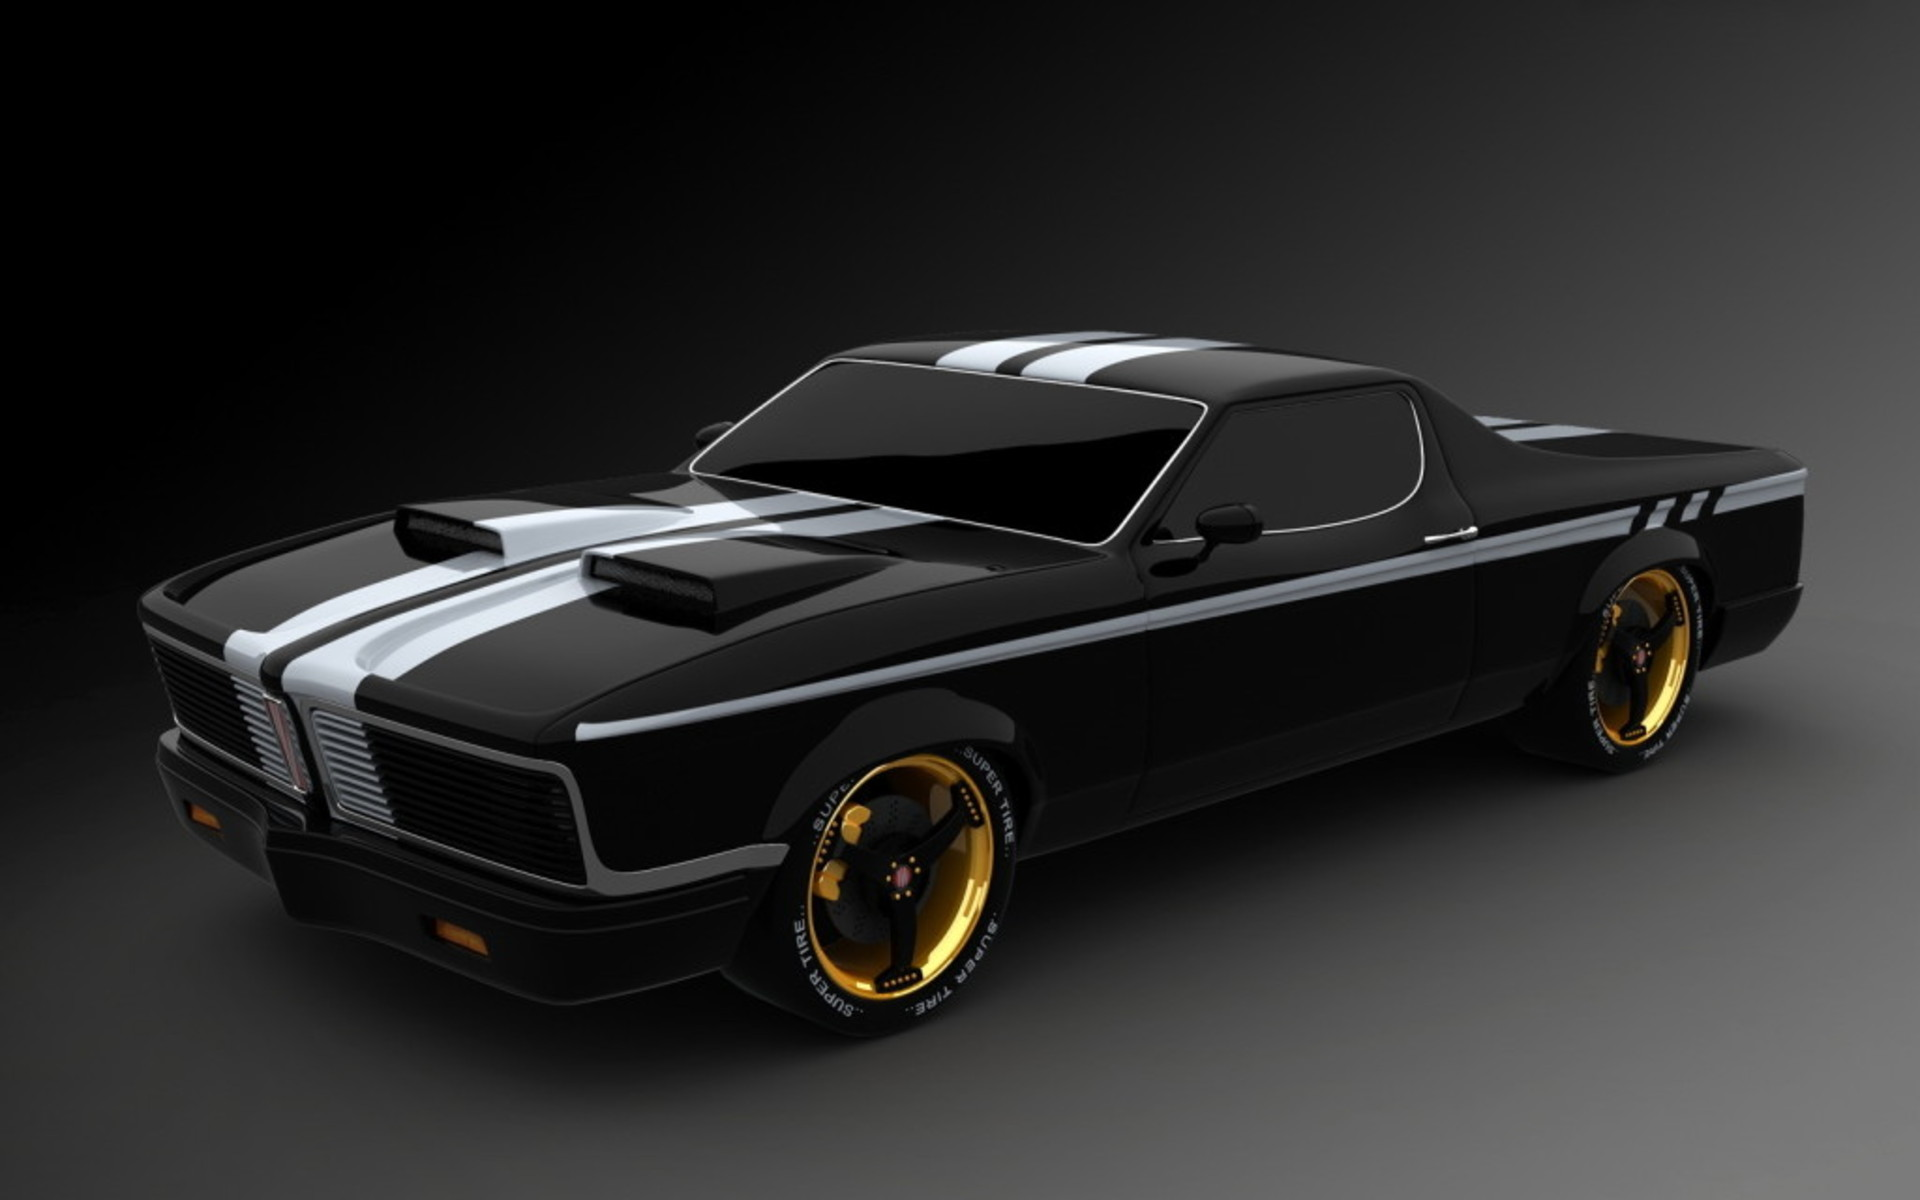 american muscle car wallpaper 5673 hd wallpapersjpg 1920x1200